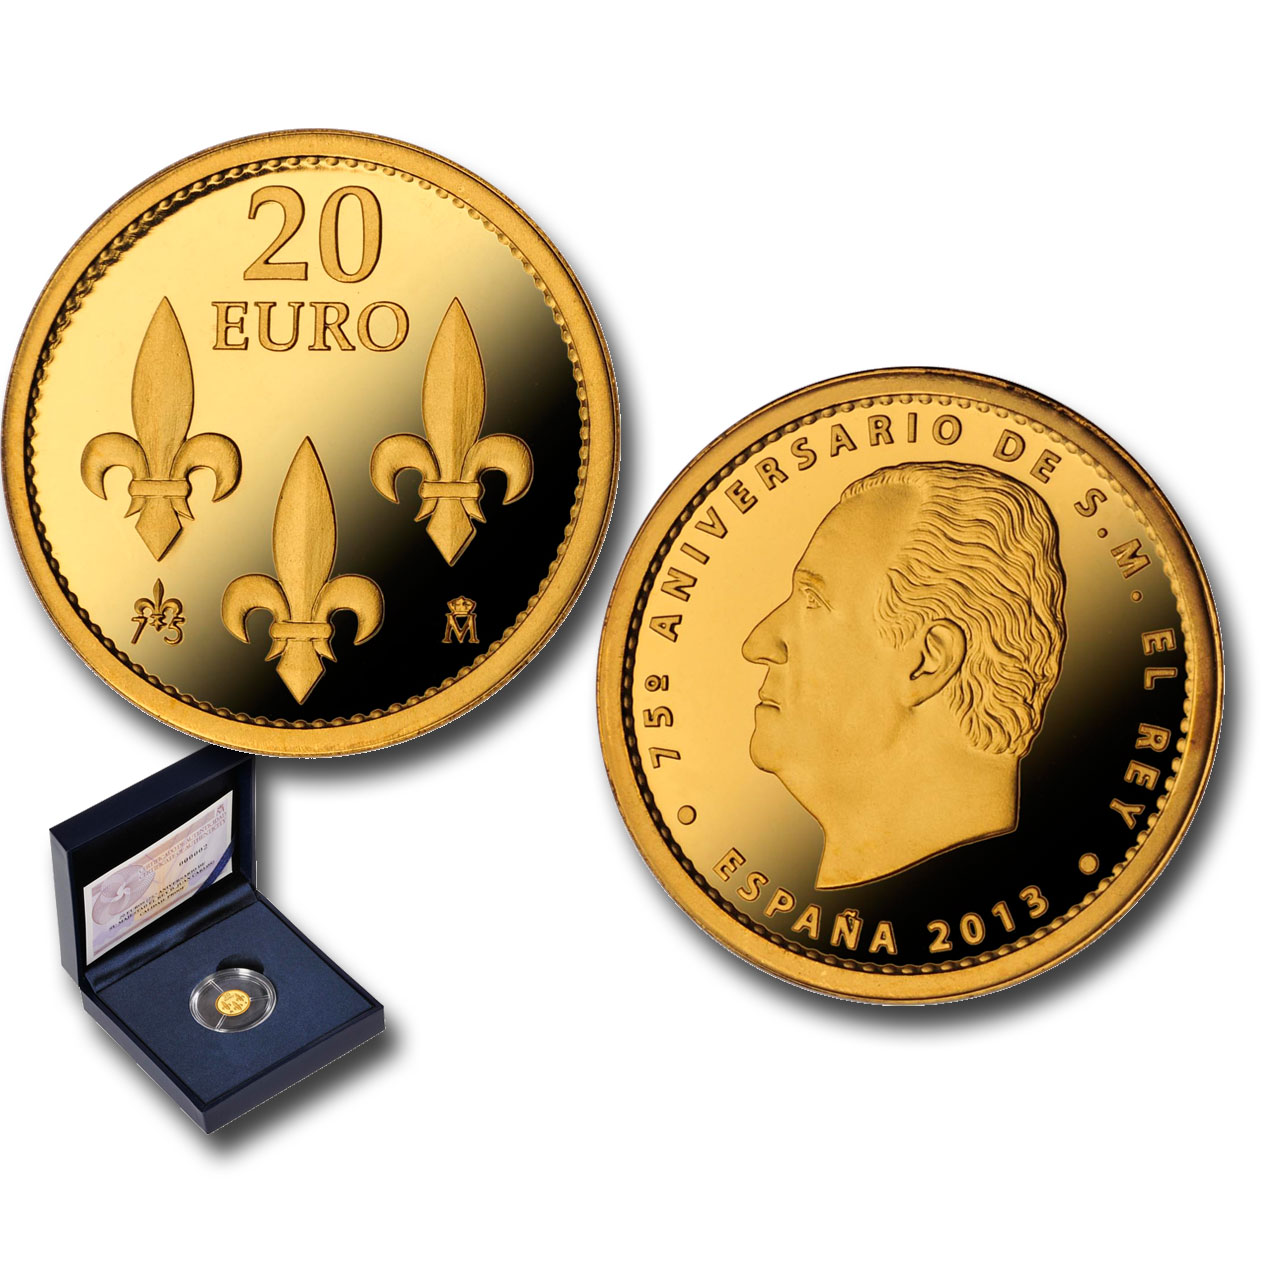 1/25th ounce gold coin. Click on image to see larger image. Abre en ventana nueva